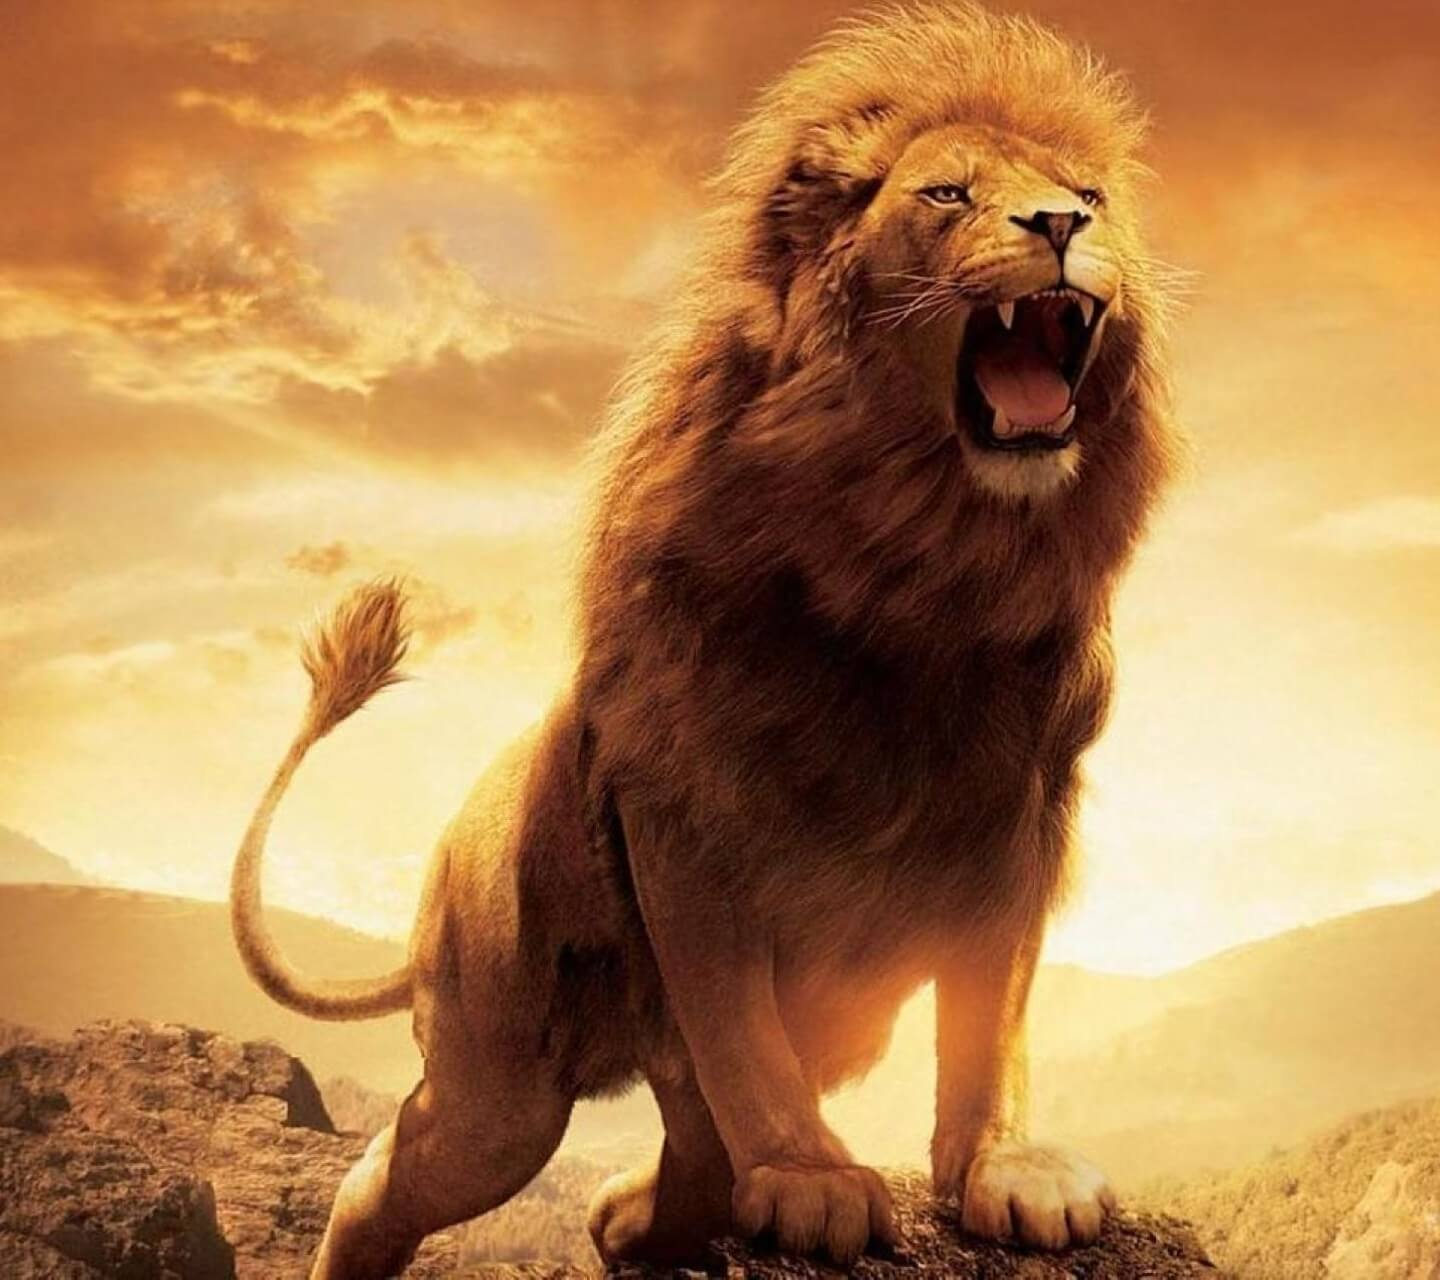 Lion Hd Wallpapers Wallpaper Cave Images, Photos, Reviews